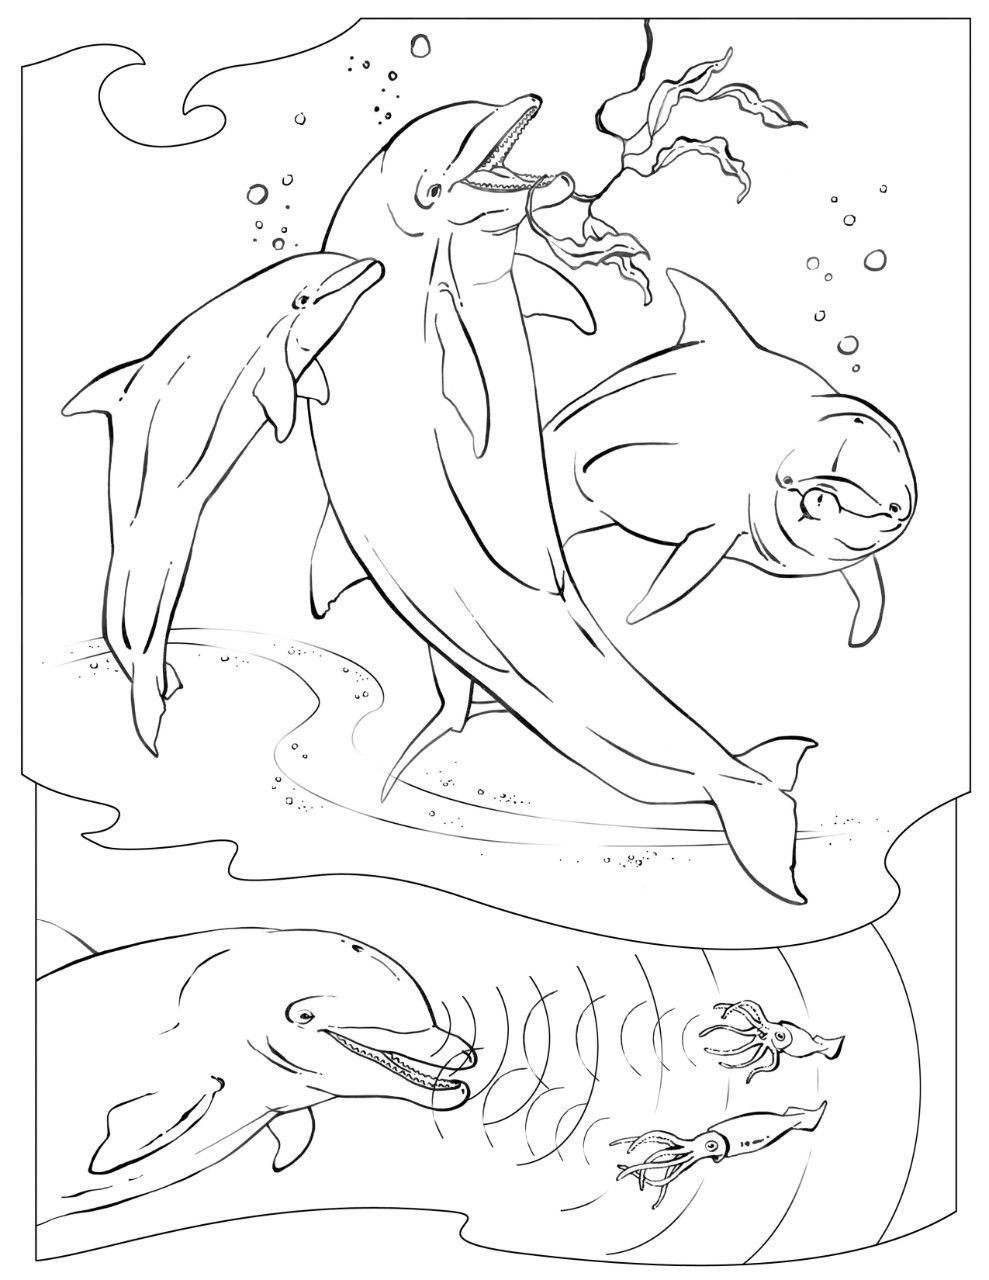 Coloring Book Animals A To I Dolphin Coloring Pages Animal